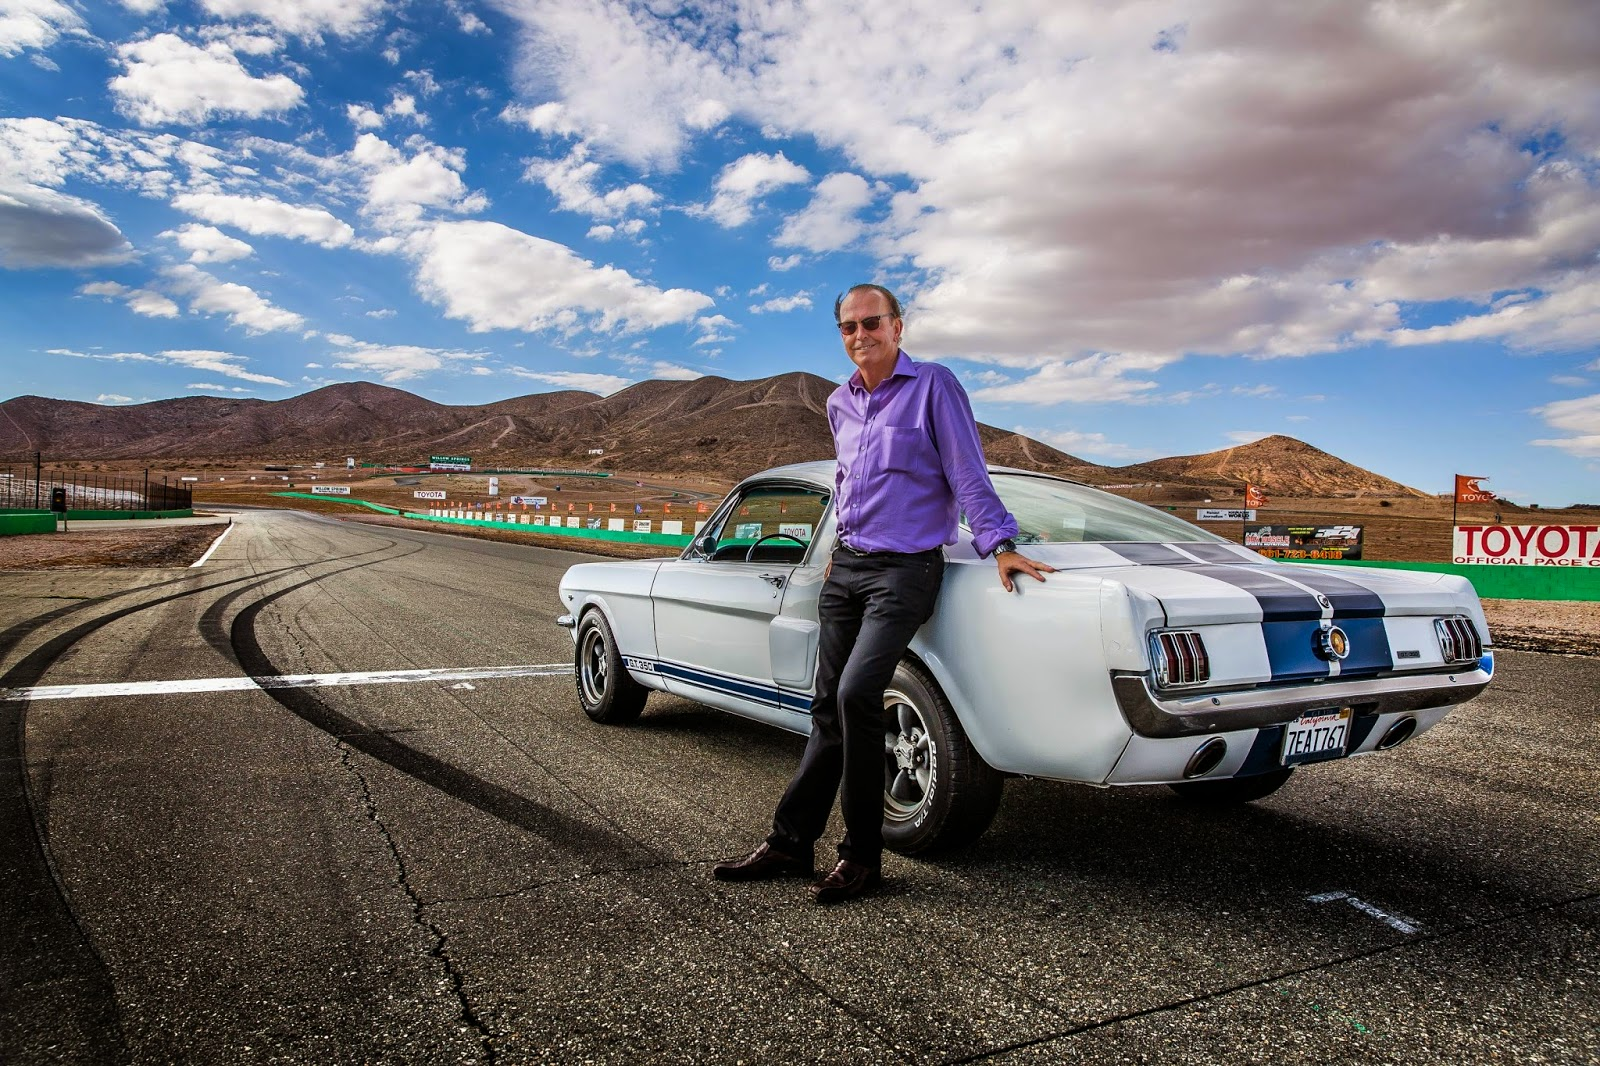 top gear and classic cars essay A list of every car reviewed on top gear, with photos every car reviewed by top gear share tweet pin email embed prev list more popular lists next list.